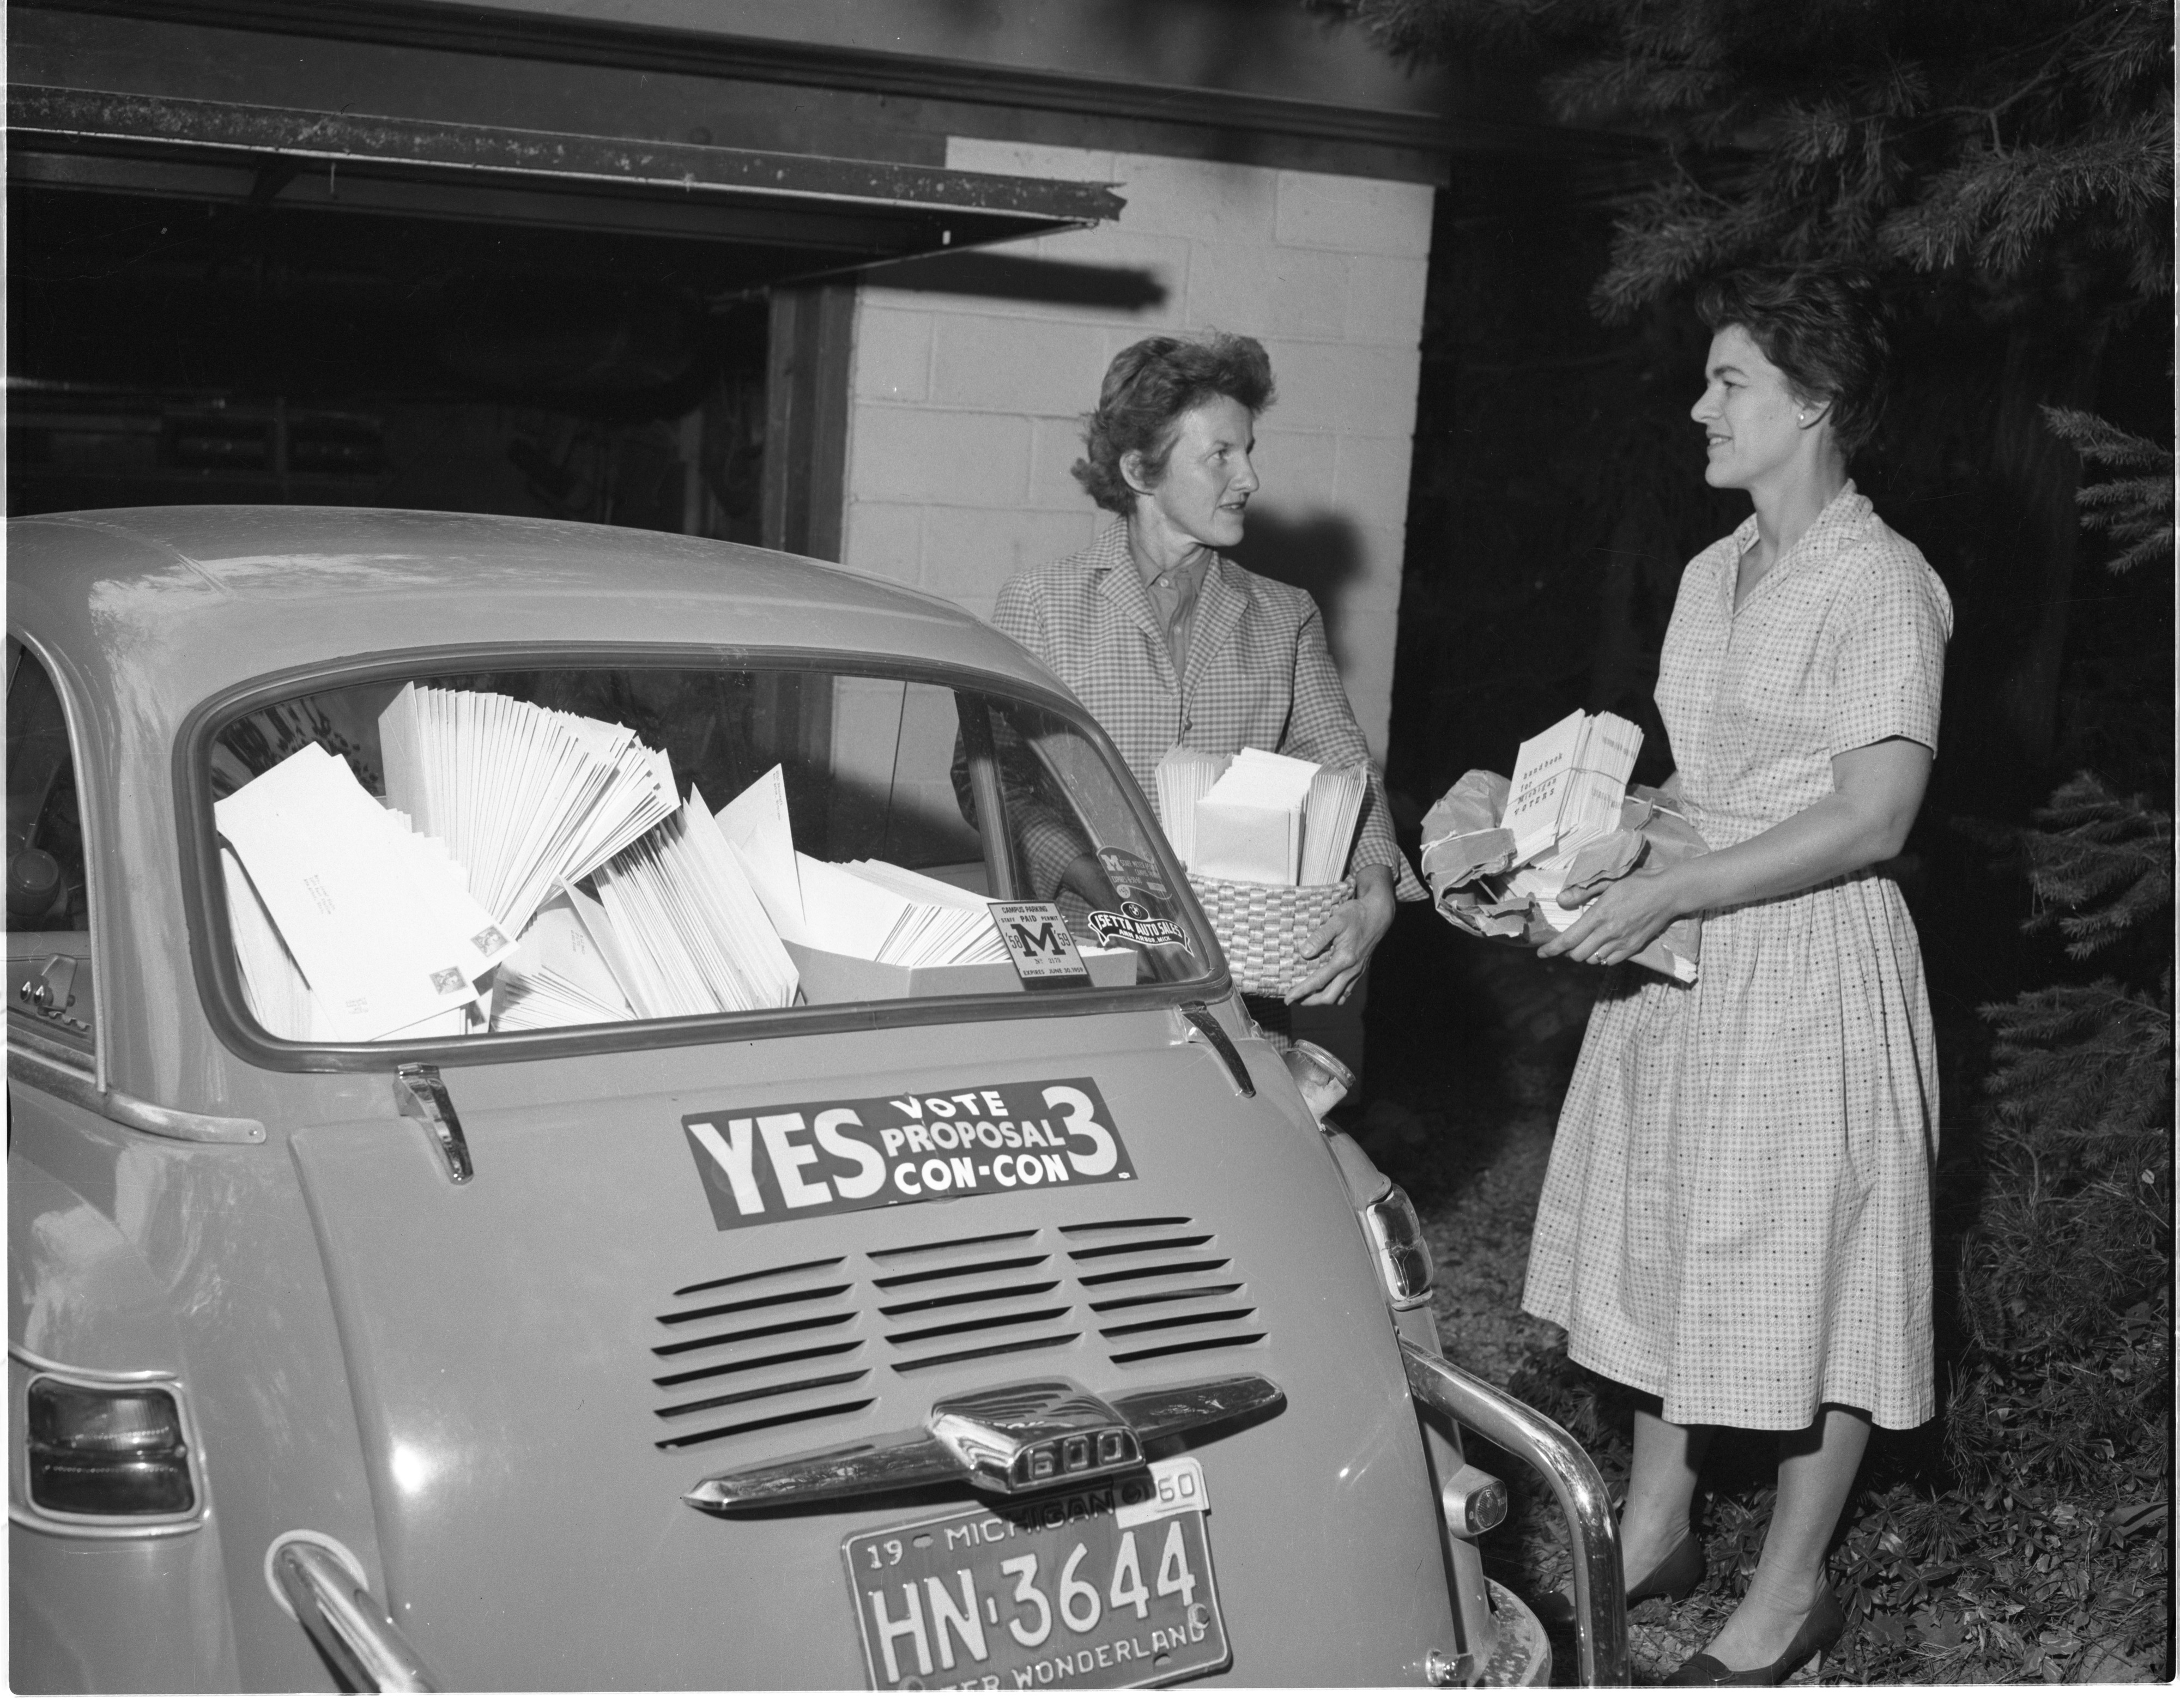 League Of Women Voters Members With Finance Campaign Letters Ready To Be Mailed, September 1960 image